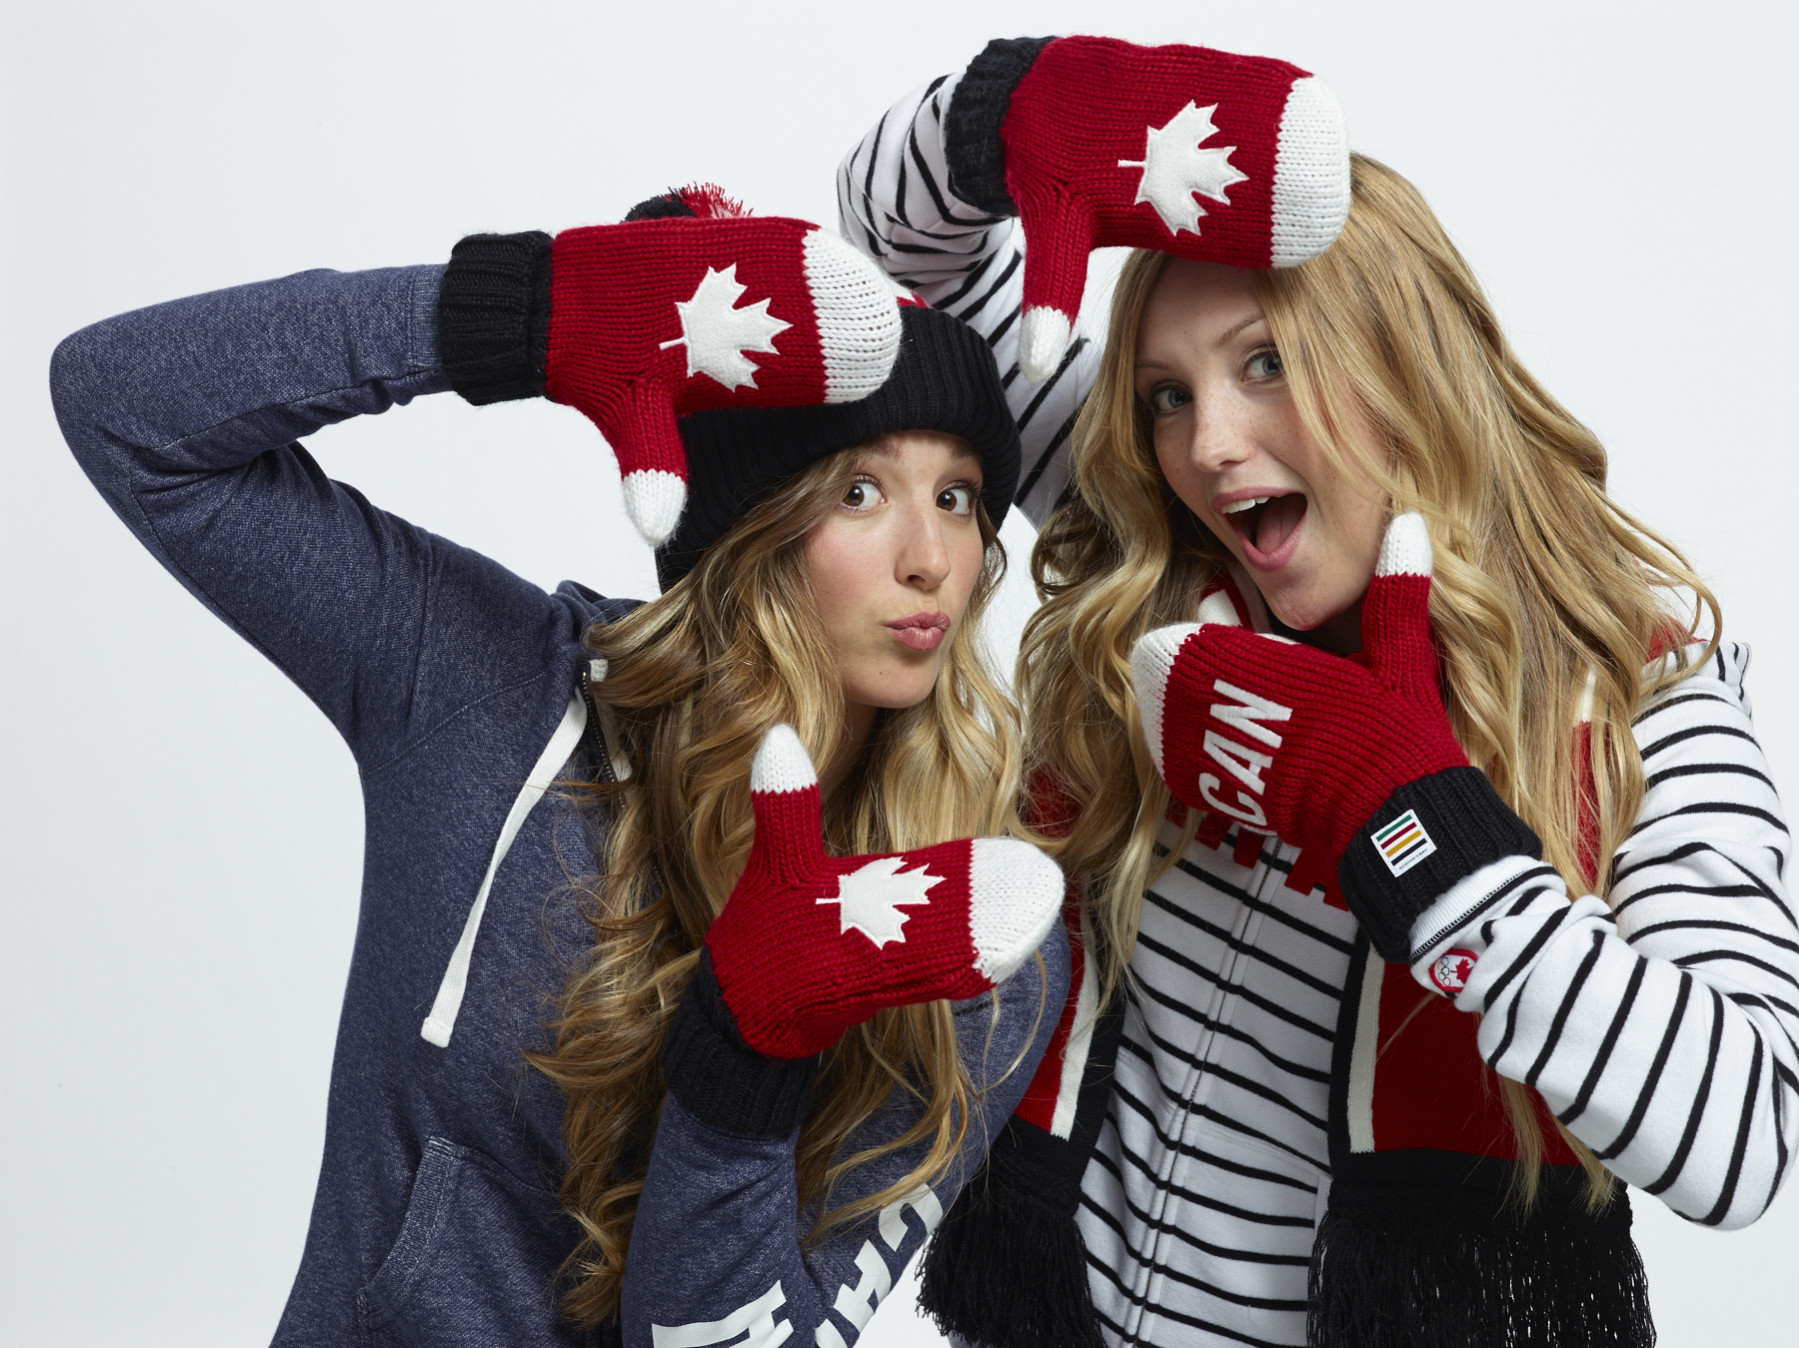 chloe & justine dufour-lapointe Freestyle skiing 2014